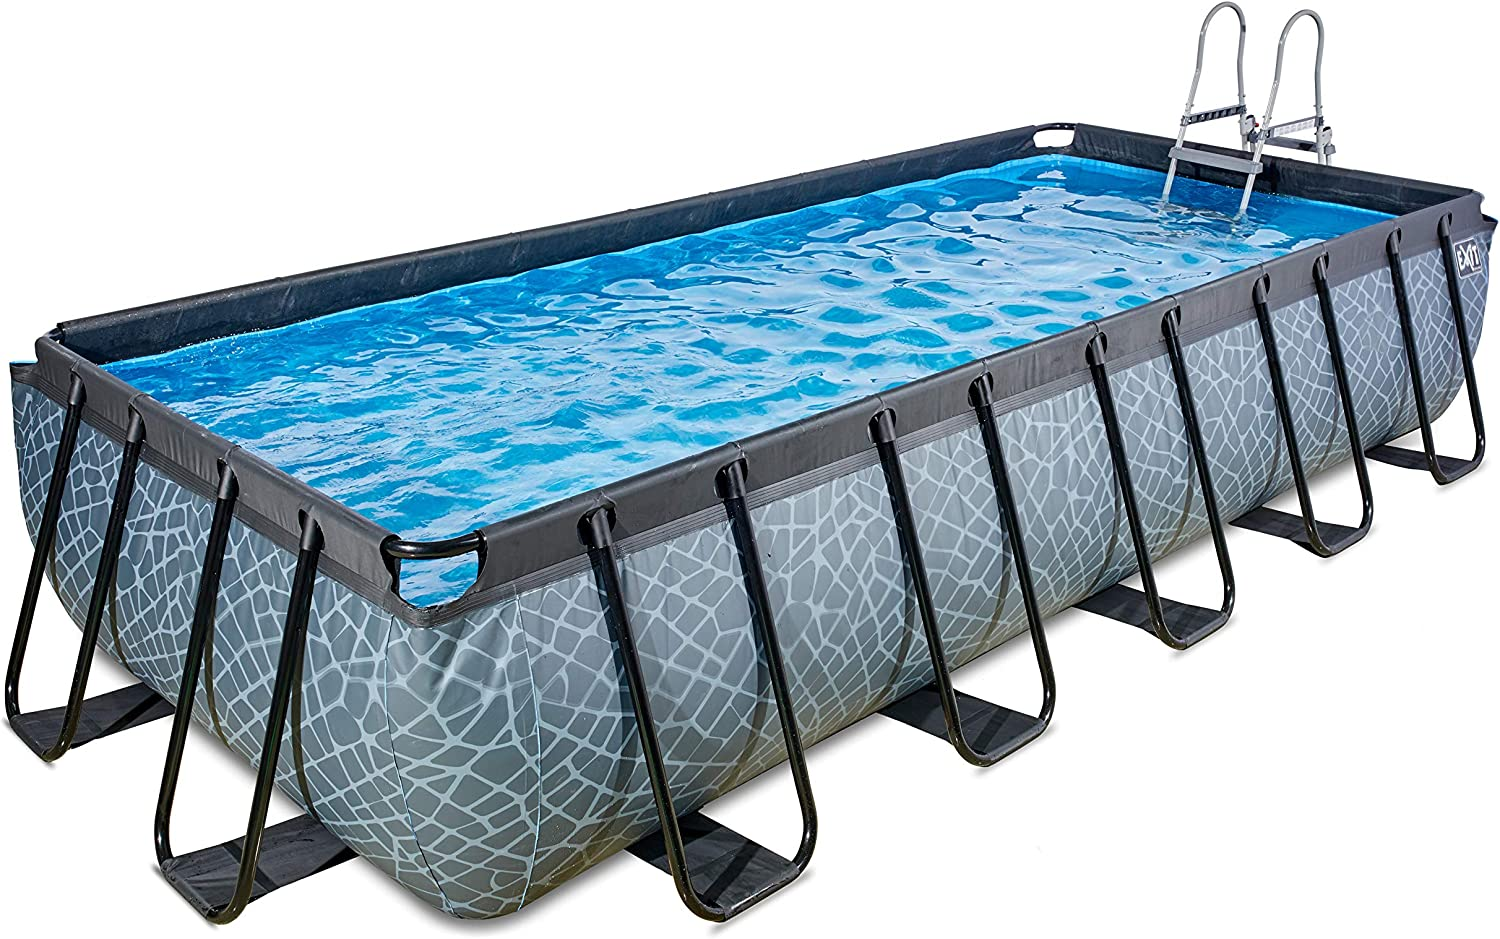 EXIT Stone Pool 540x250 cm with Sand Filter Pump - Grey - Piscina ...